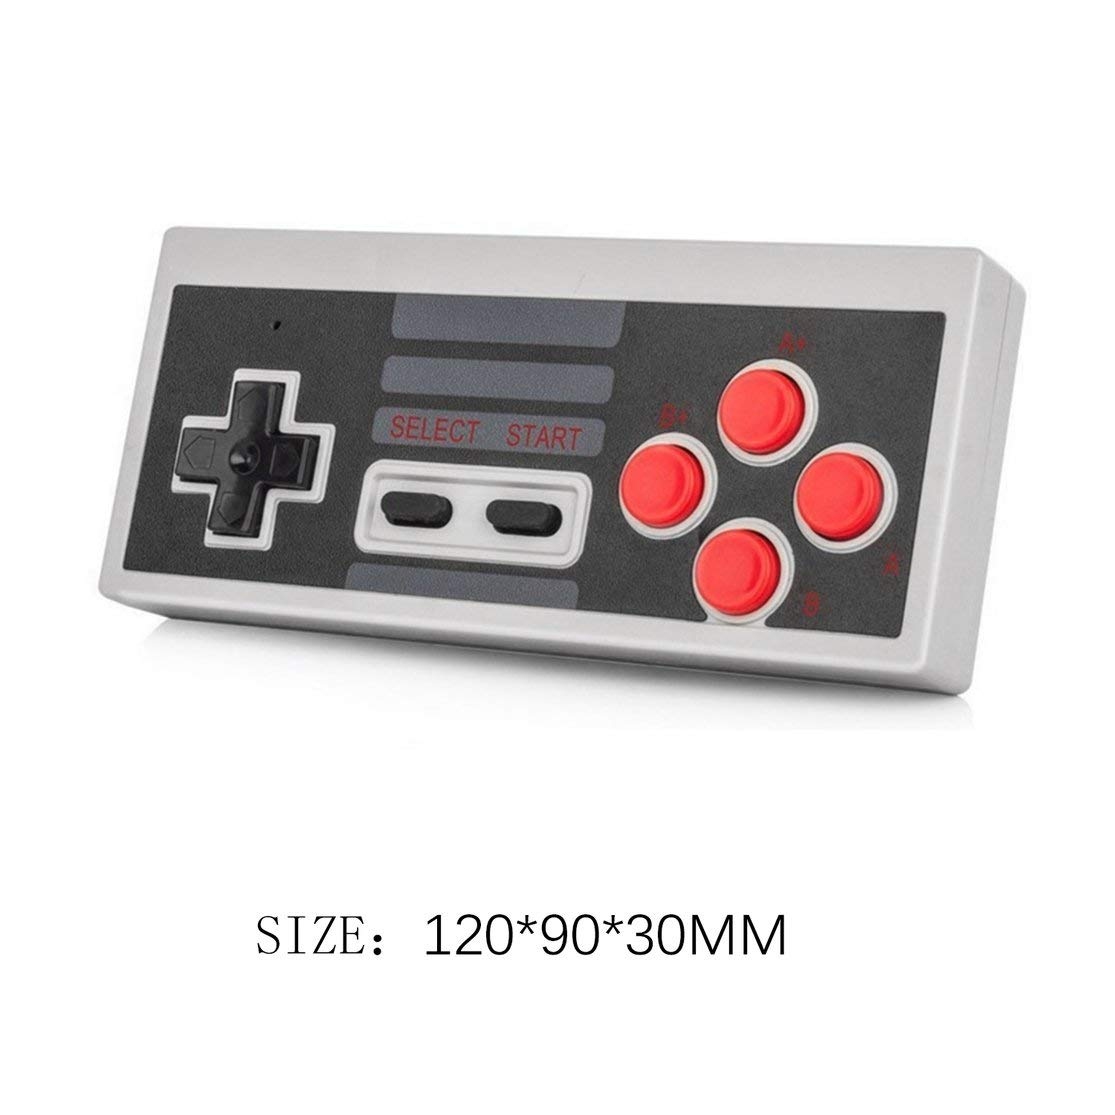 LouiseEvel215 2.4G Wireless Controller Mini Gamepad f/ür NES Classic Edition Controller mit Turbo Function Game Joystick